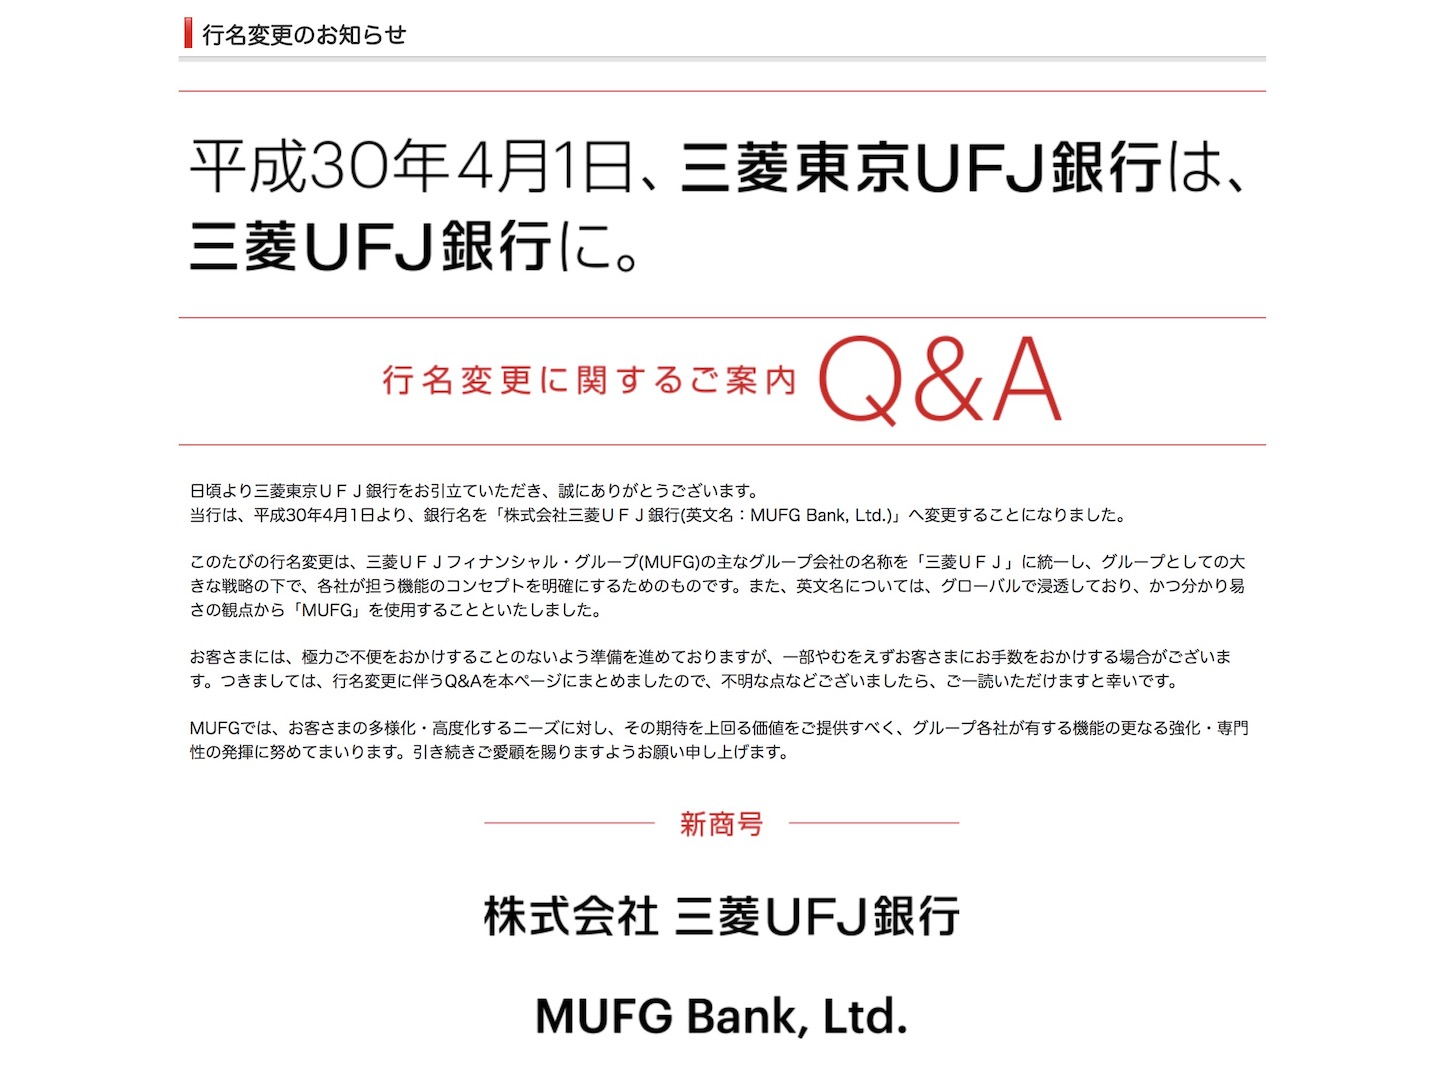 UFJ Changed its name